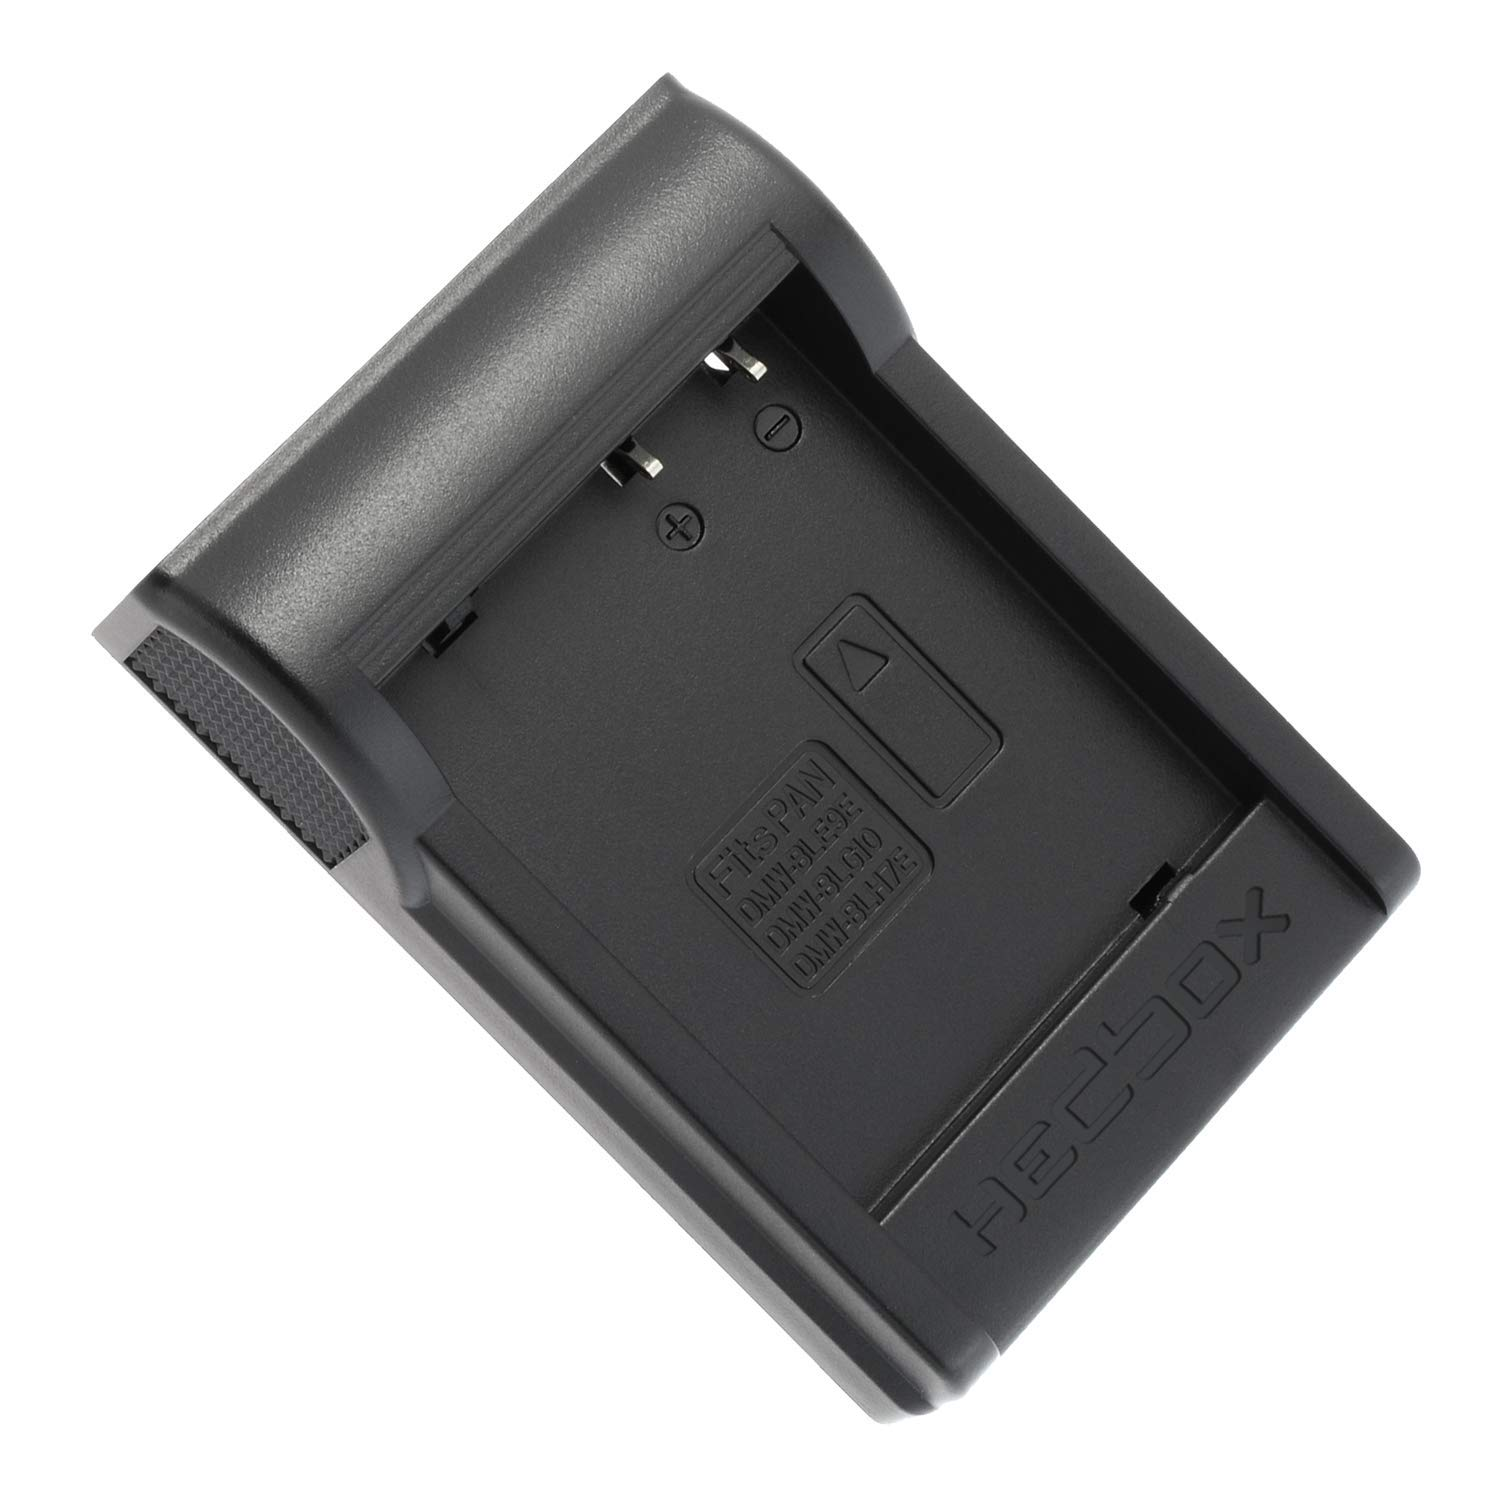 HEDBOX   RP-DBLH7   Battery Charger Plate for PANASONIC   DMW-BLE9; DMW-BLG10; DMW-BLH7 (Battery Chargers RP-DC50, RP-DC40 and RP-DC30)